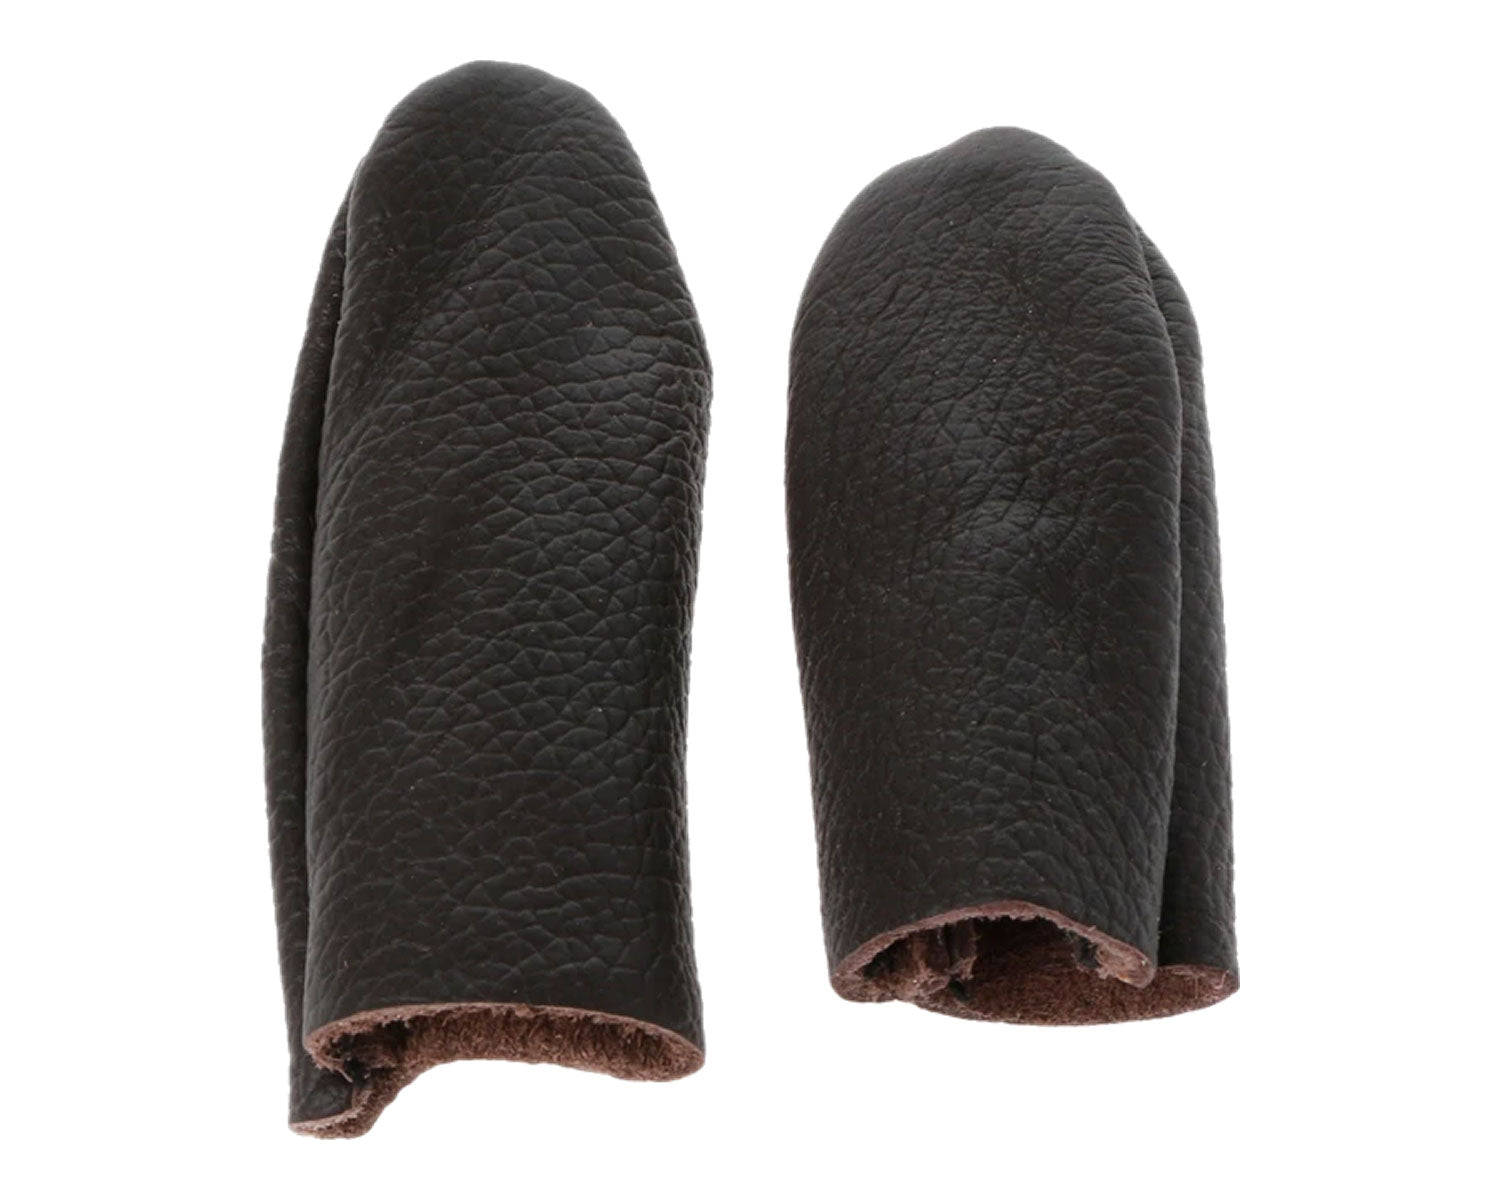 Needle Felting Finger Protectors, Finger Guards, Leather - 15 Pack